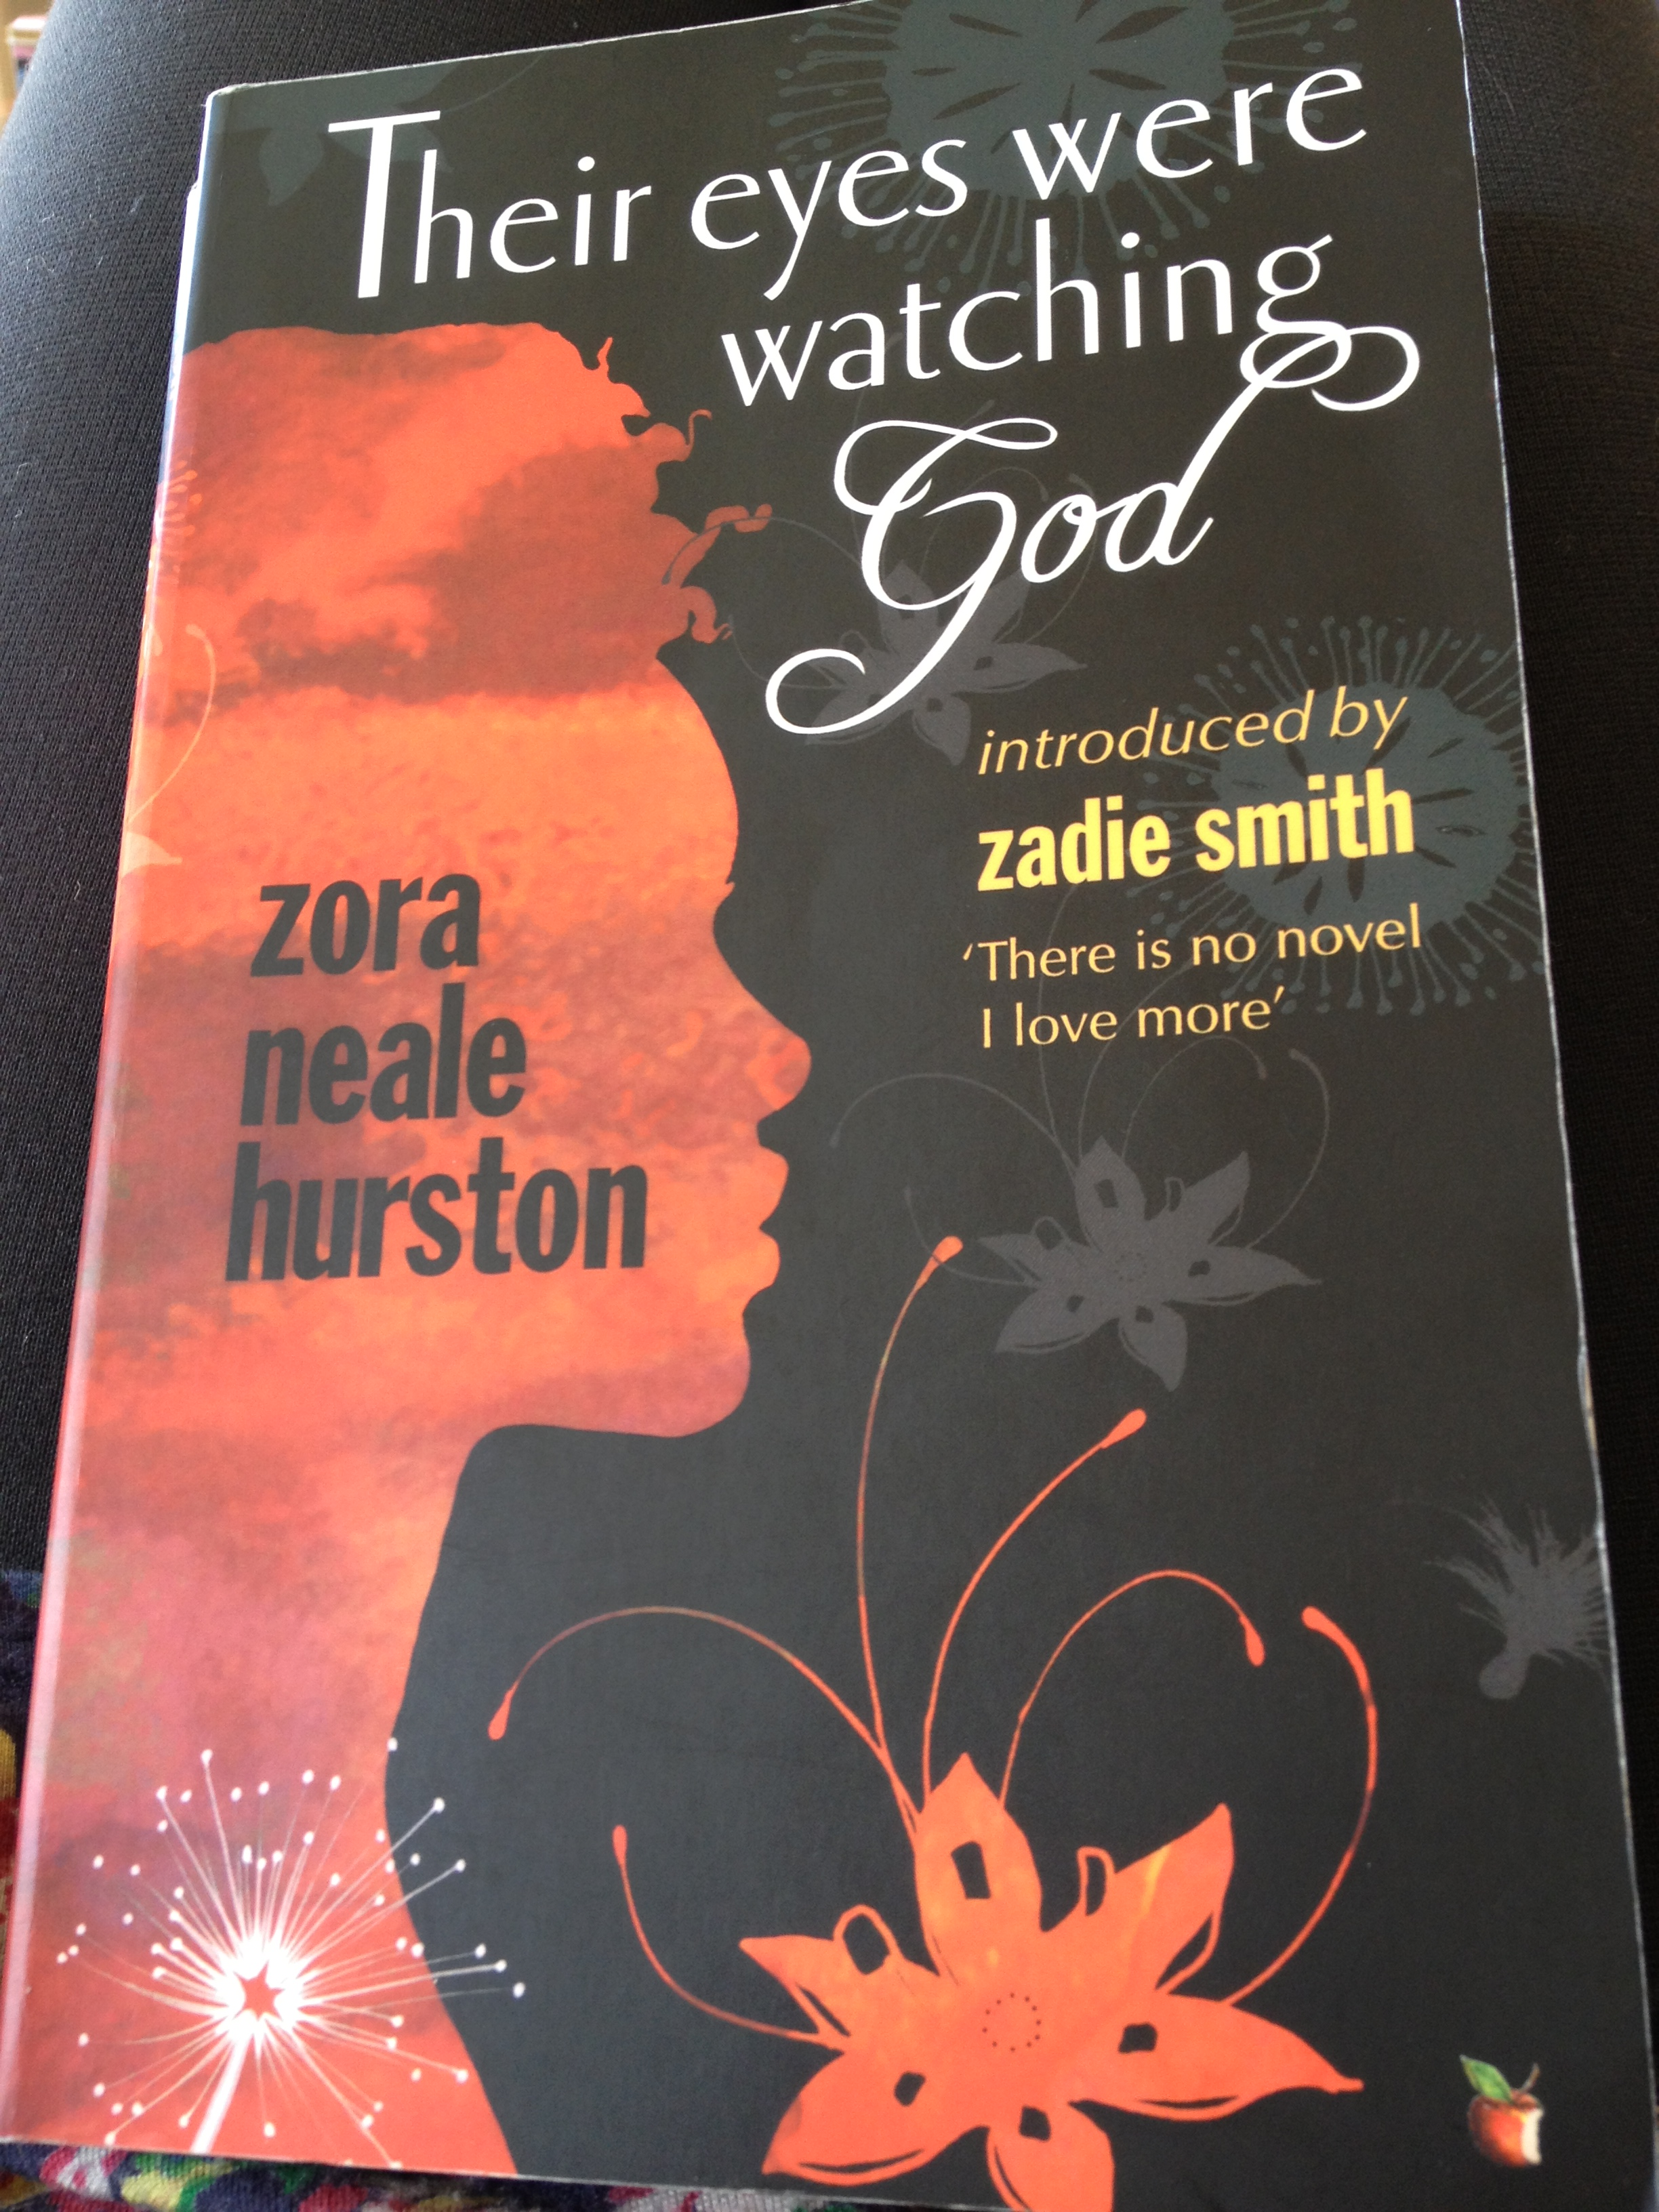 an analysis of their eyes were watching god a novel by zora neale hurston Their eyes were watching god zora neale hurston, 1937 famous for: three husbands, two very different narrative voices, and one terrifying rabid dog.